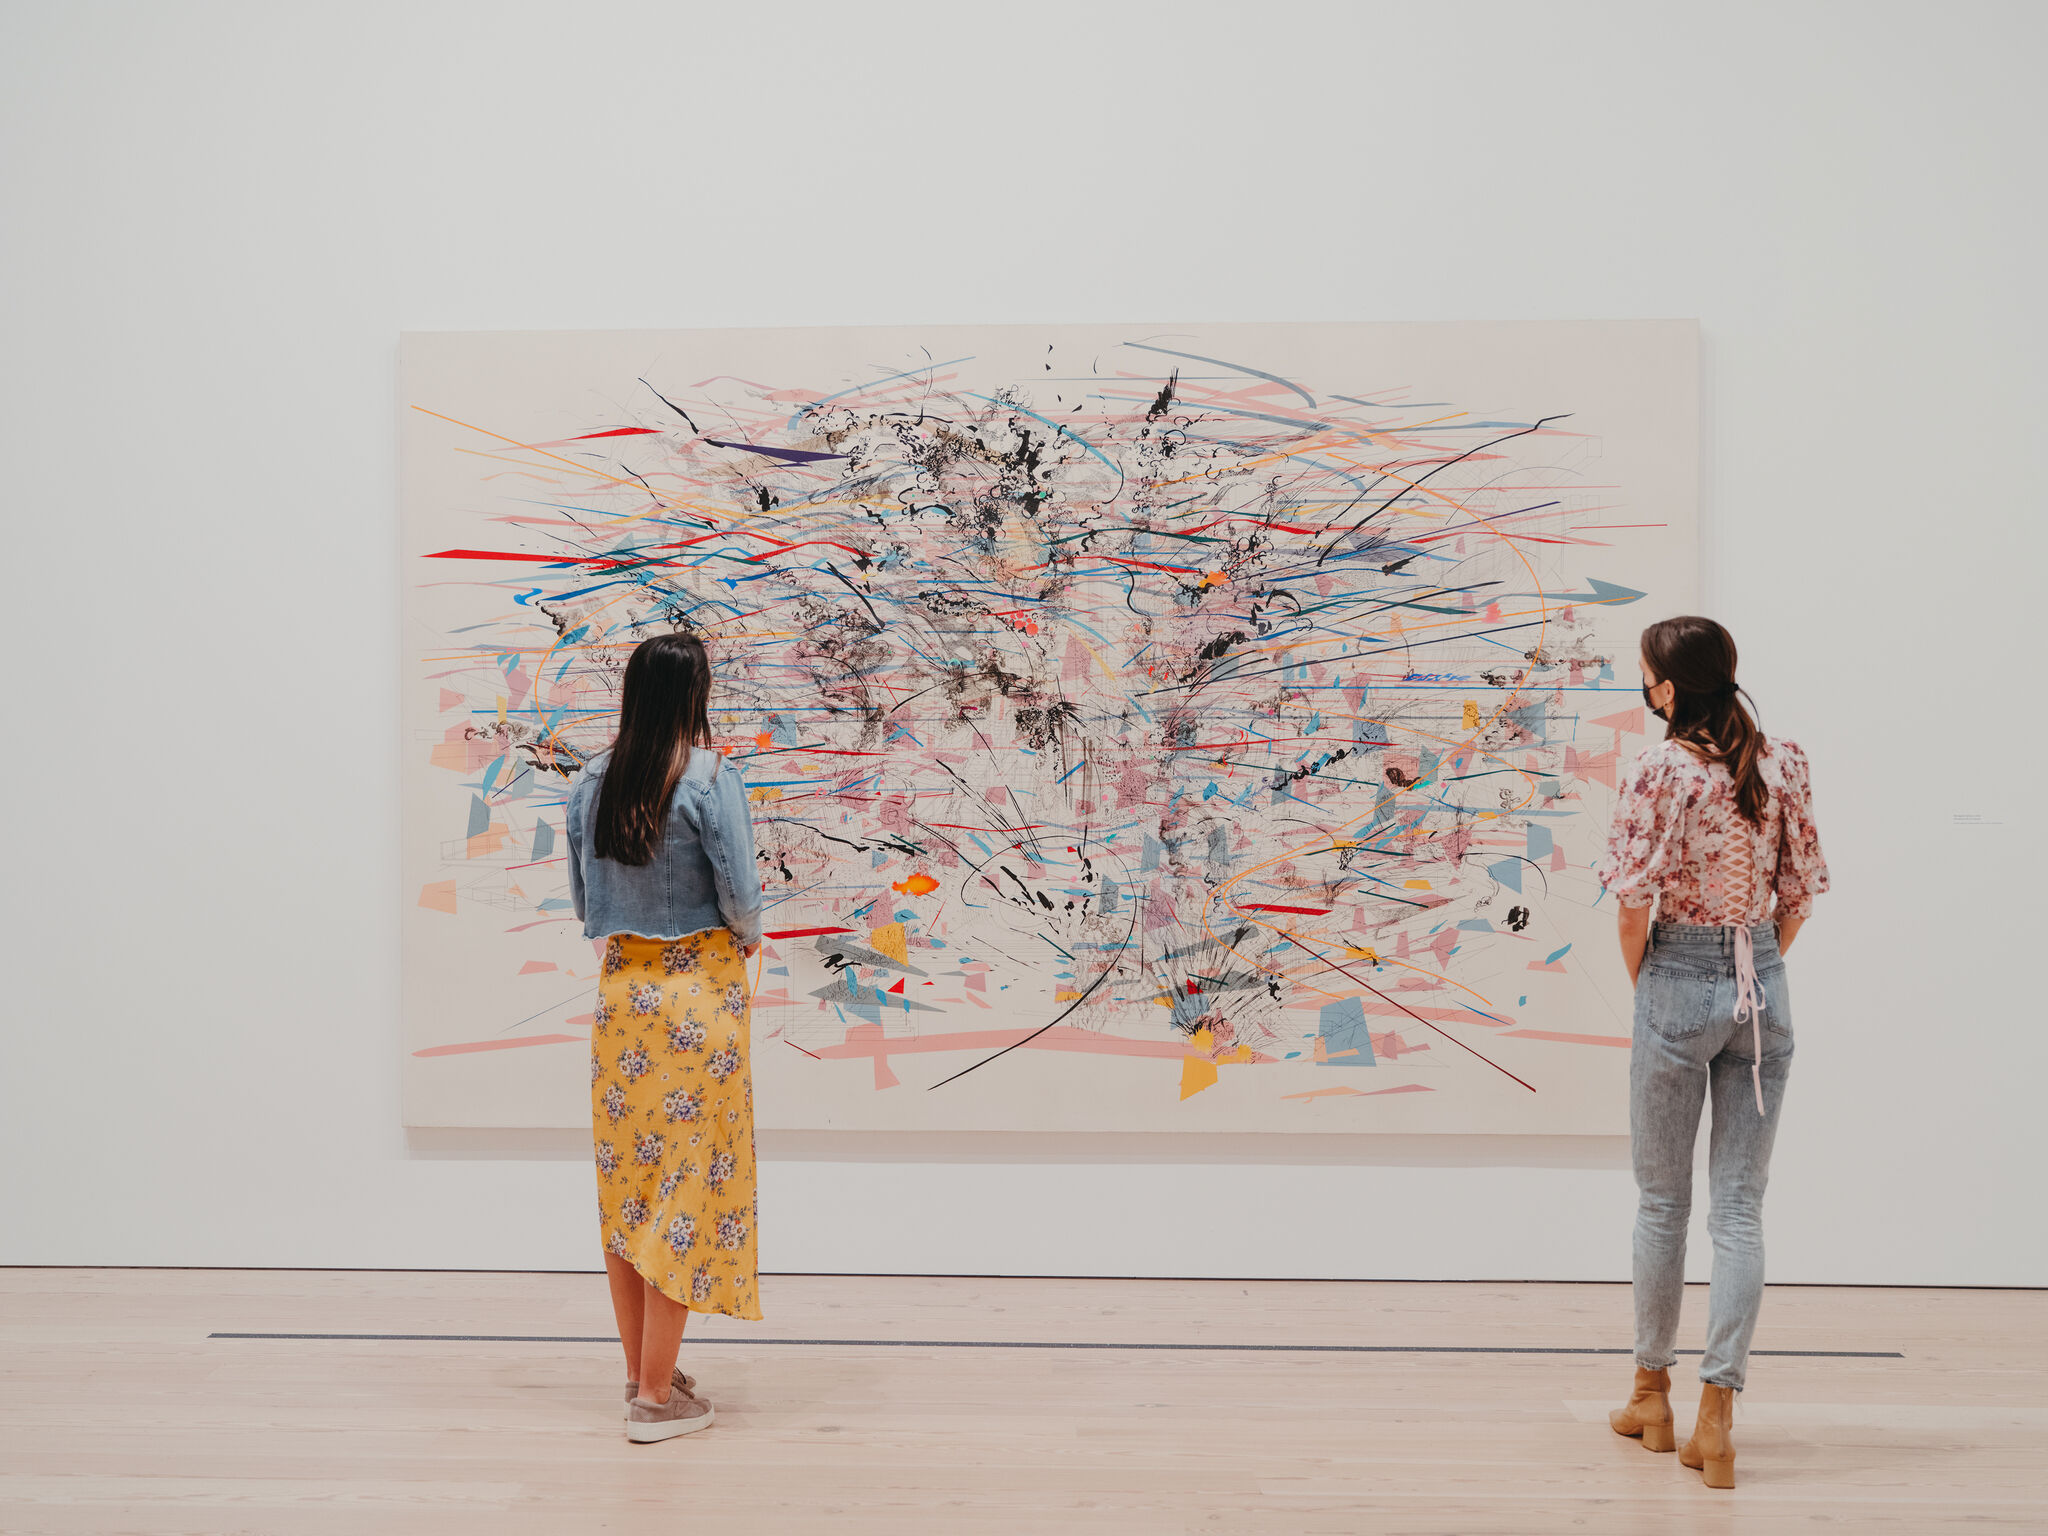 Two masked visitors stand in front of and view a colorful abstract painting hanging on a white wall.